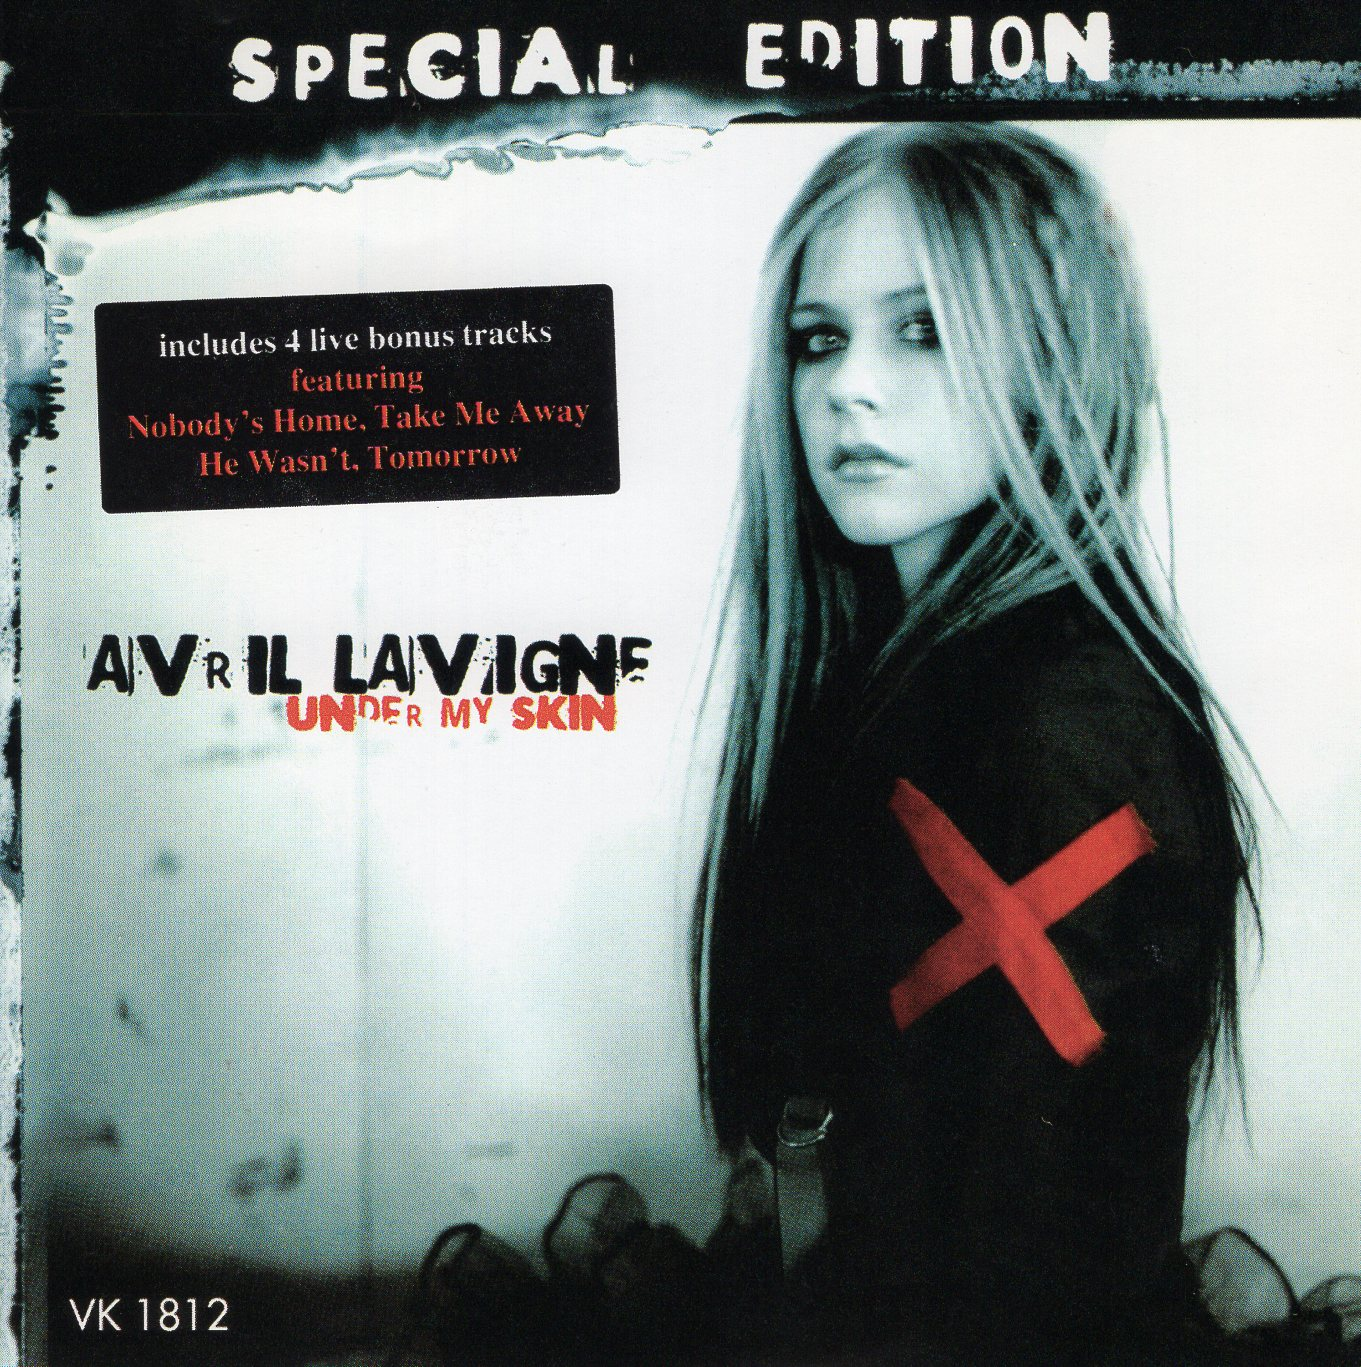 """Under My Skin"" Avril Lavigne"